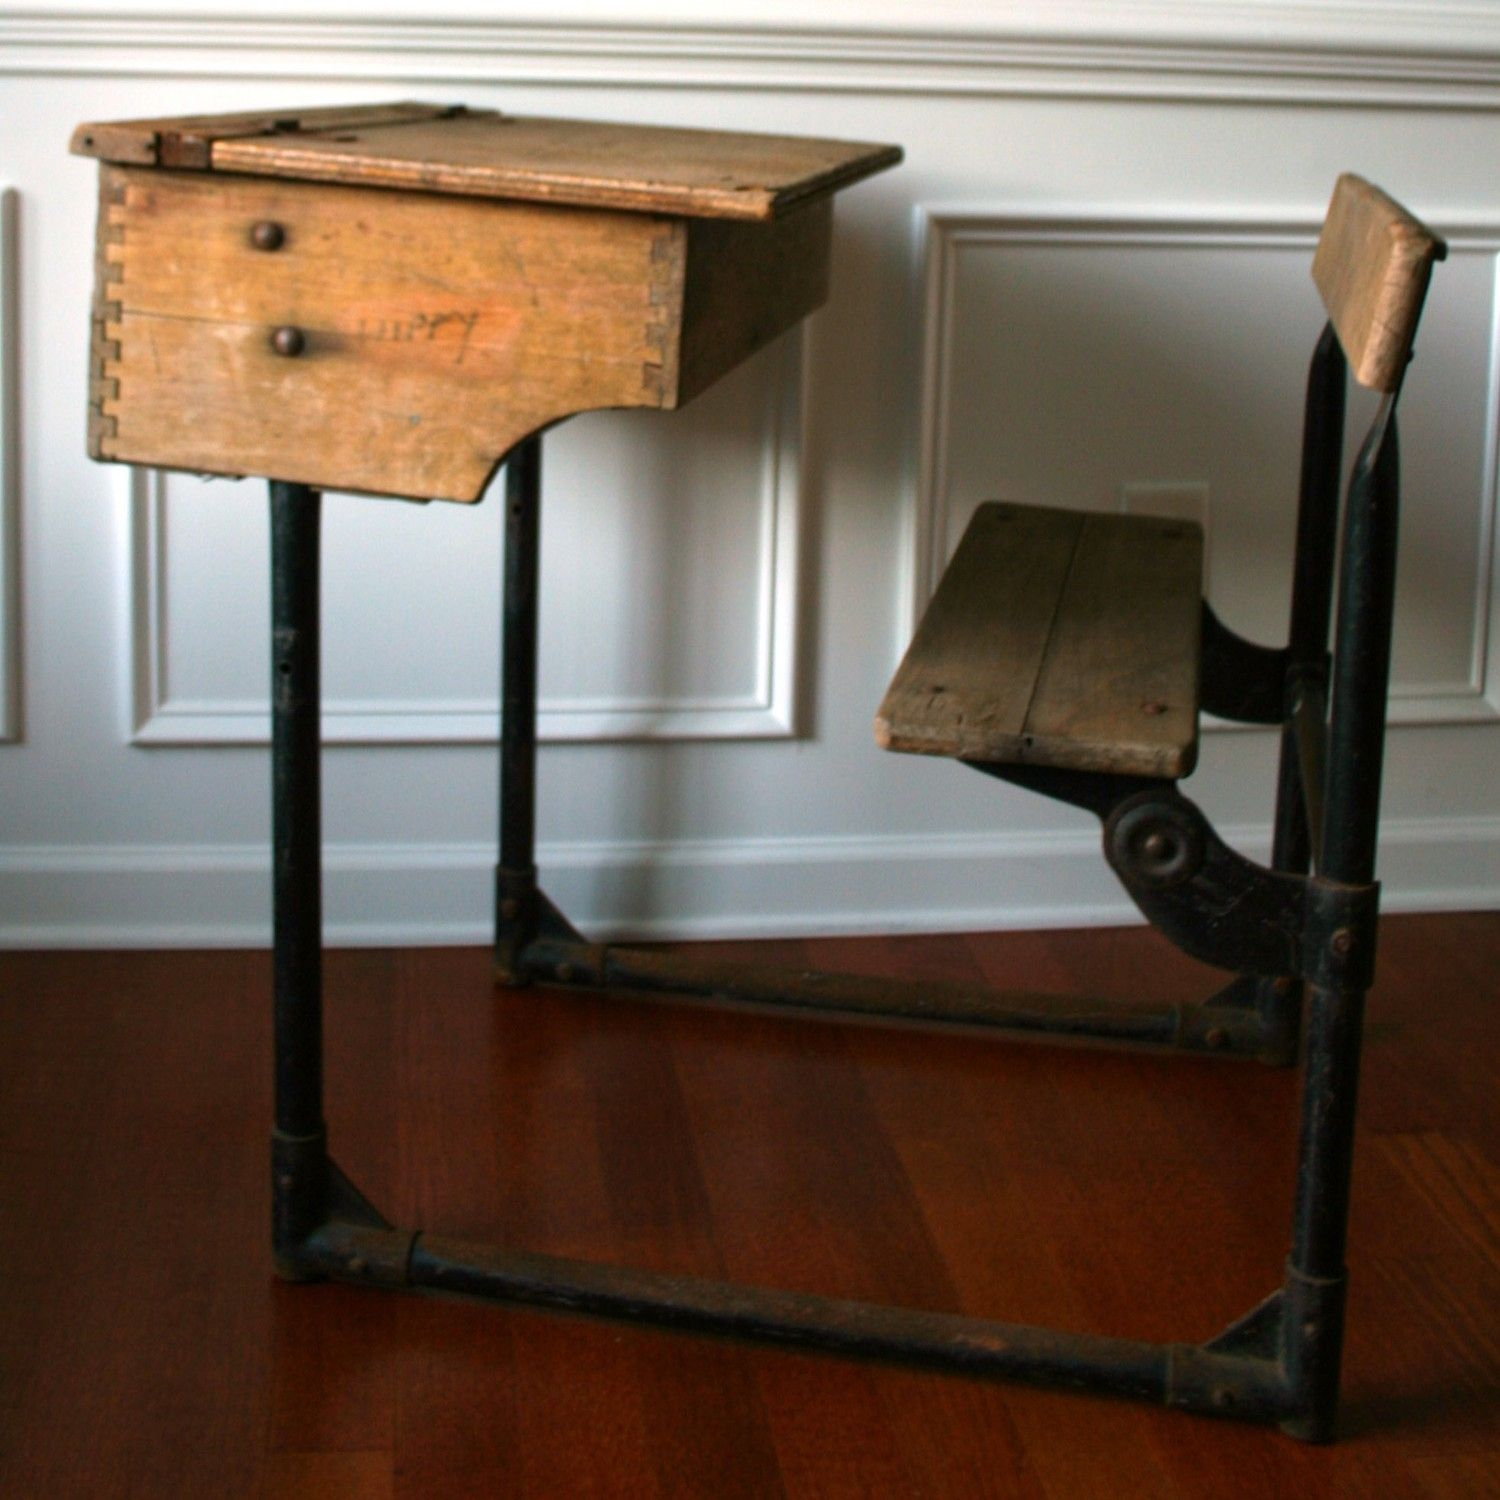 Antique Childrens School Desk And Chair - Antique Childrens School Desk And Chair Http://devintavern.com